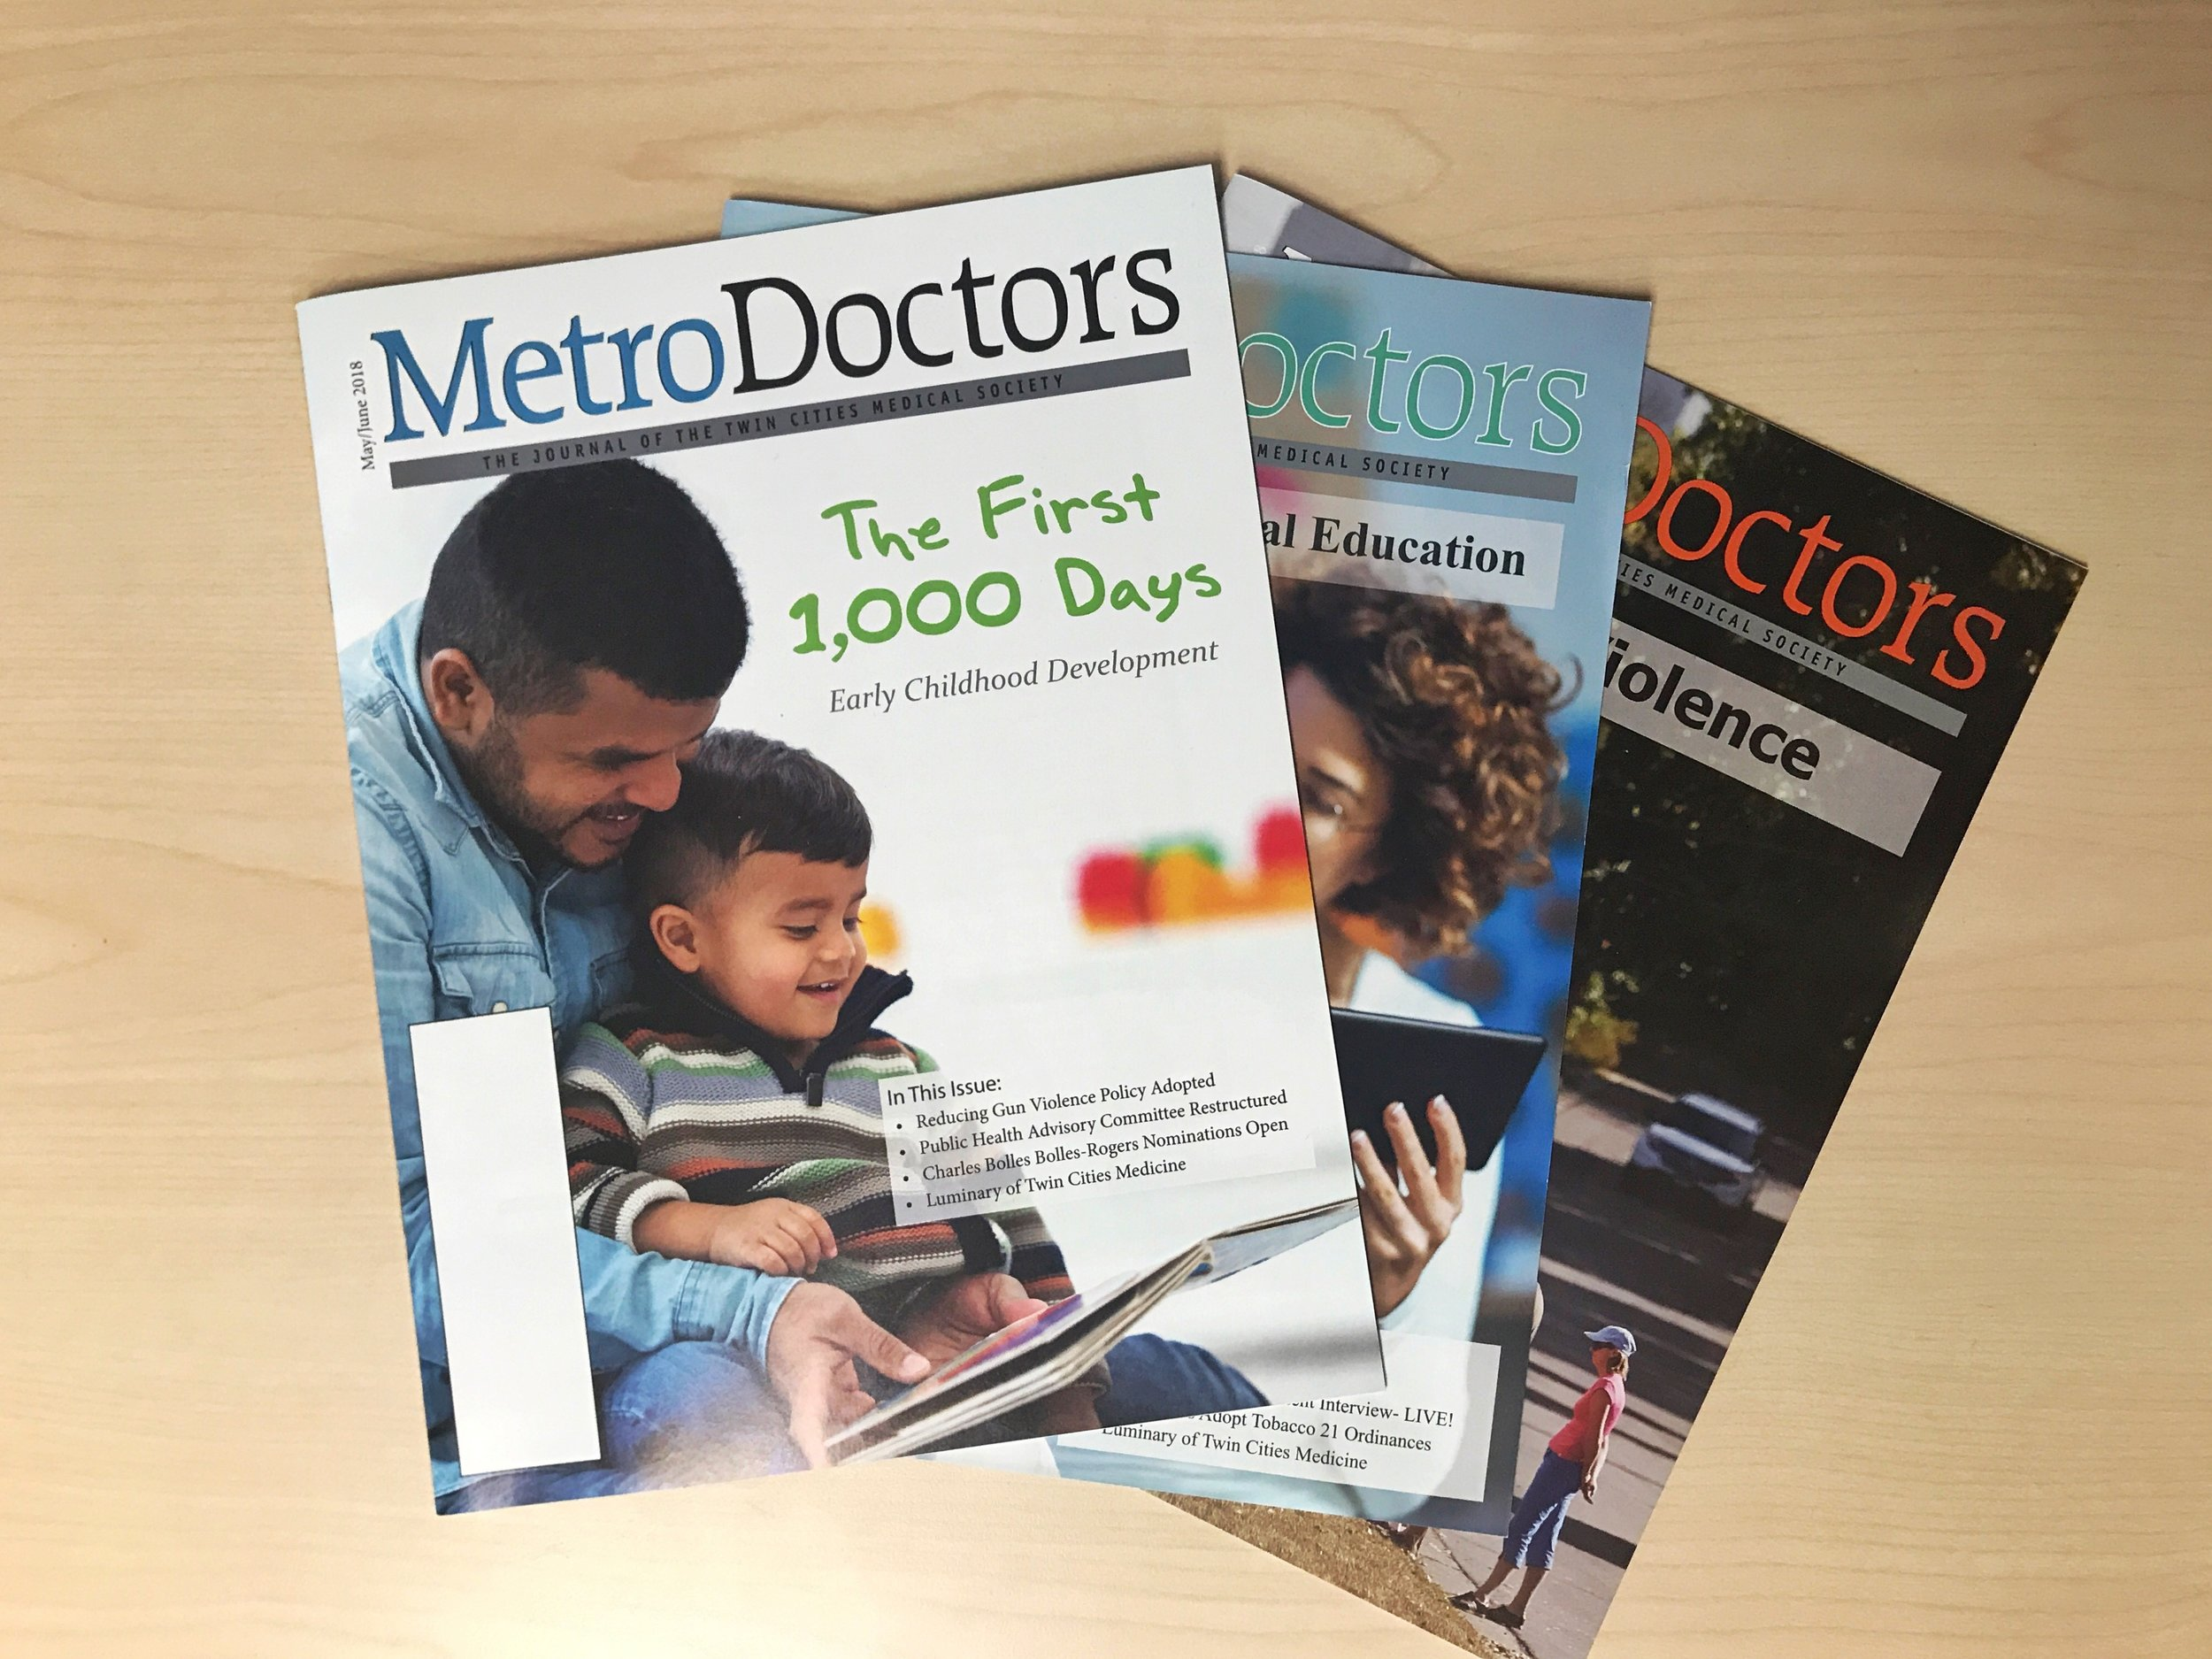 Advertising - Reach up to 5,700 physicians, clinic managers and health care professionals in the seven county metro area via MetroDoctors, a publication of the Twin Cities Medical Society. MetroDoctors is a key resource on issues affecting the practice of medicine, the delivery of health care and other subjects of interest to the medical community.